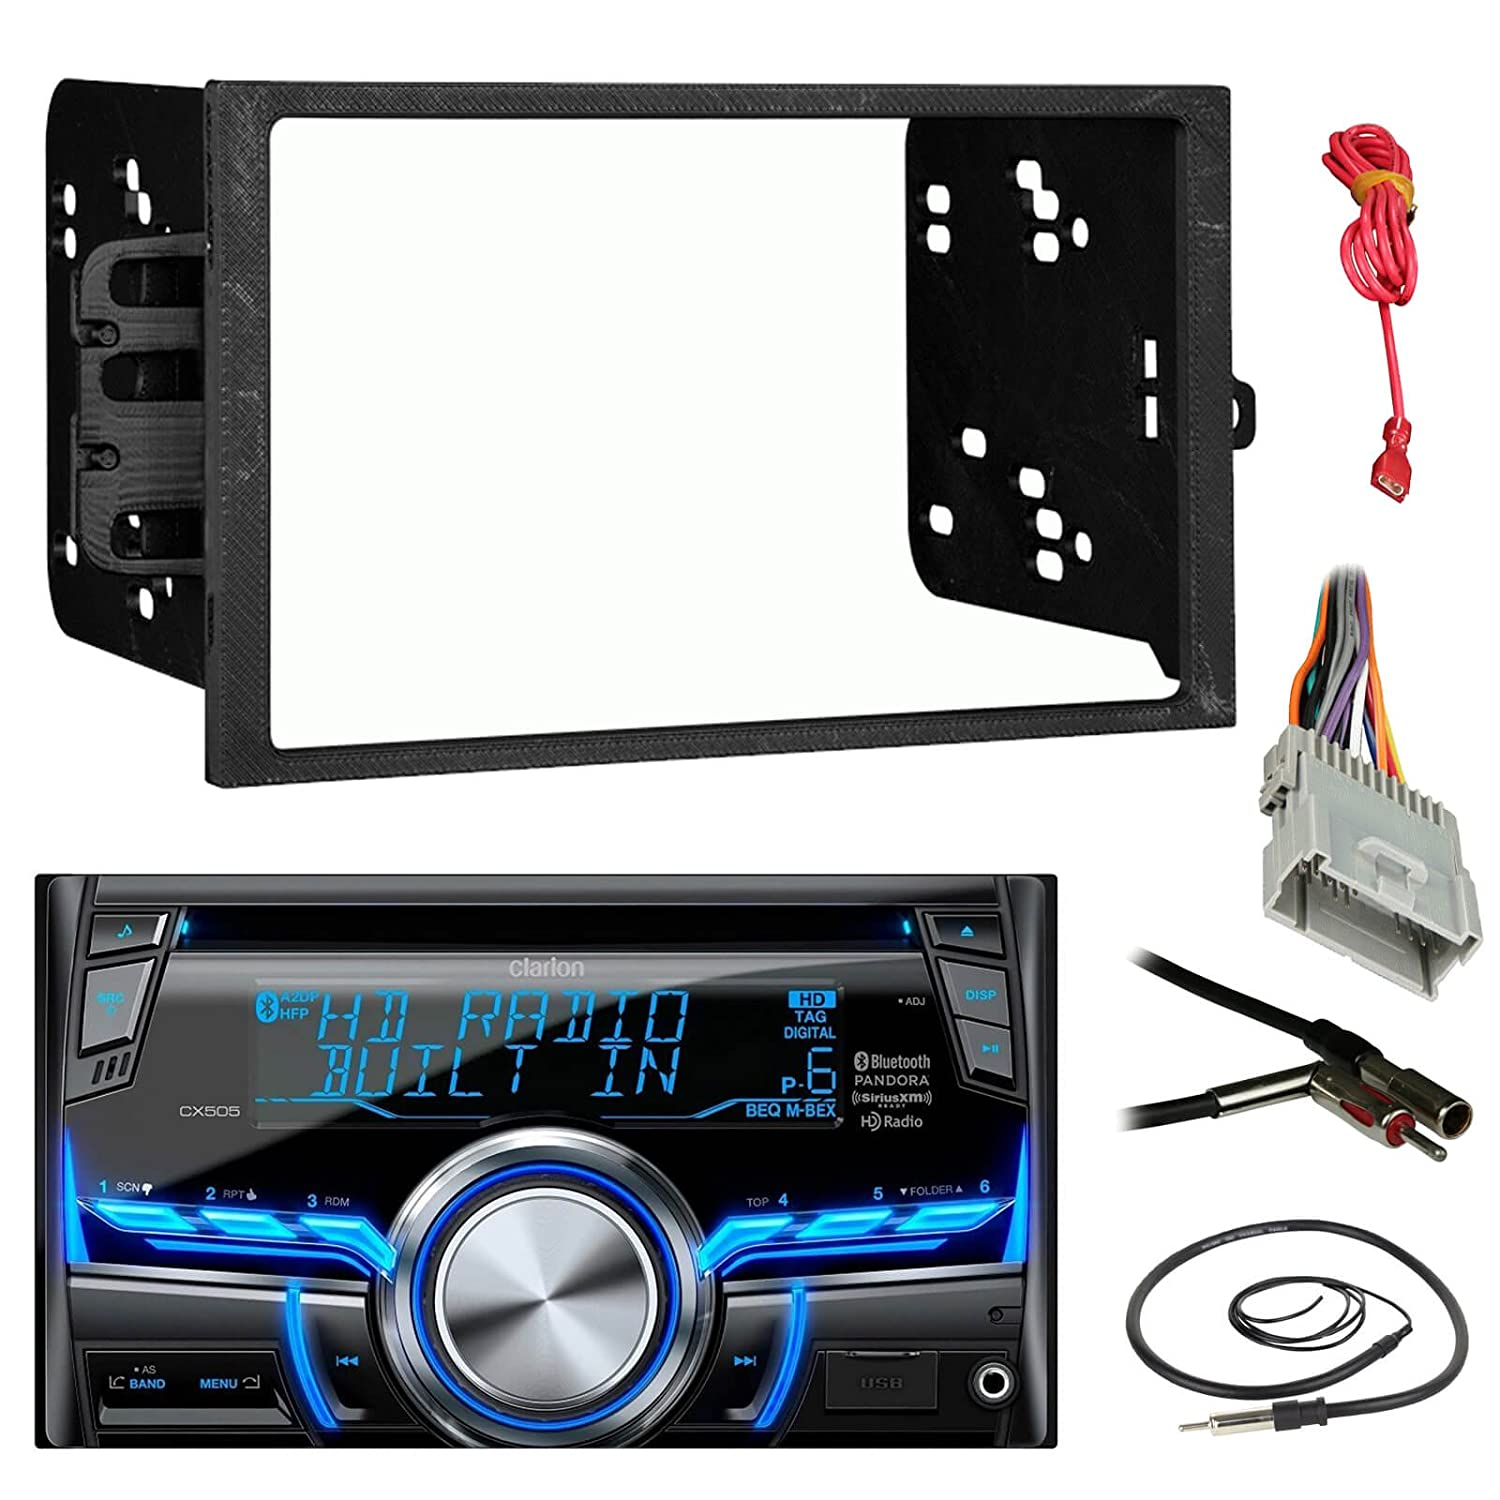 Amazon.com: Clarion CX505 Double Din Bluetooth CD MP3 Car Stereo Receiver  Bundle Combo With Metra installation kit for car stereo (Fits Most GM  Vehicles) + ...